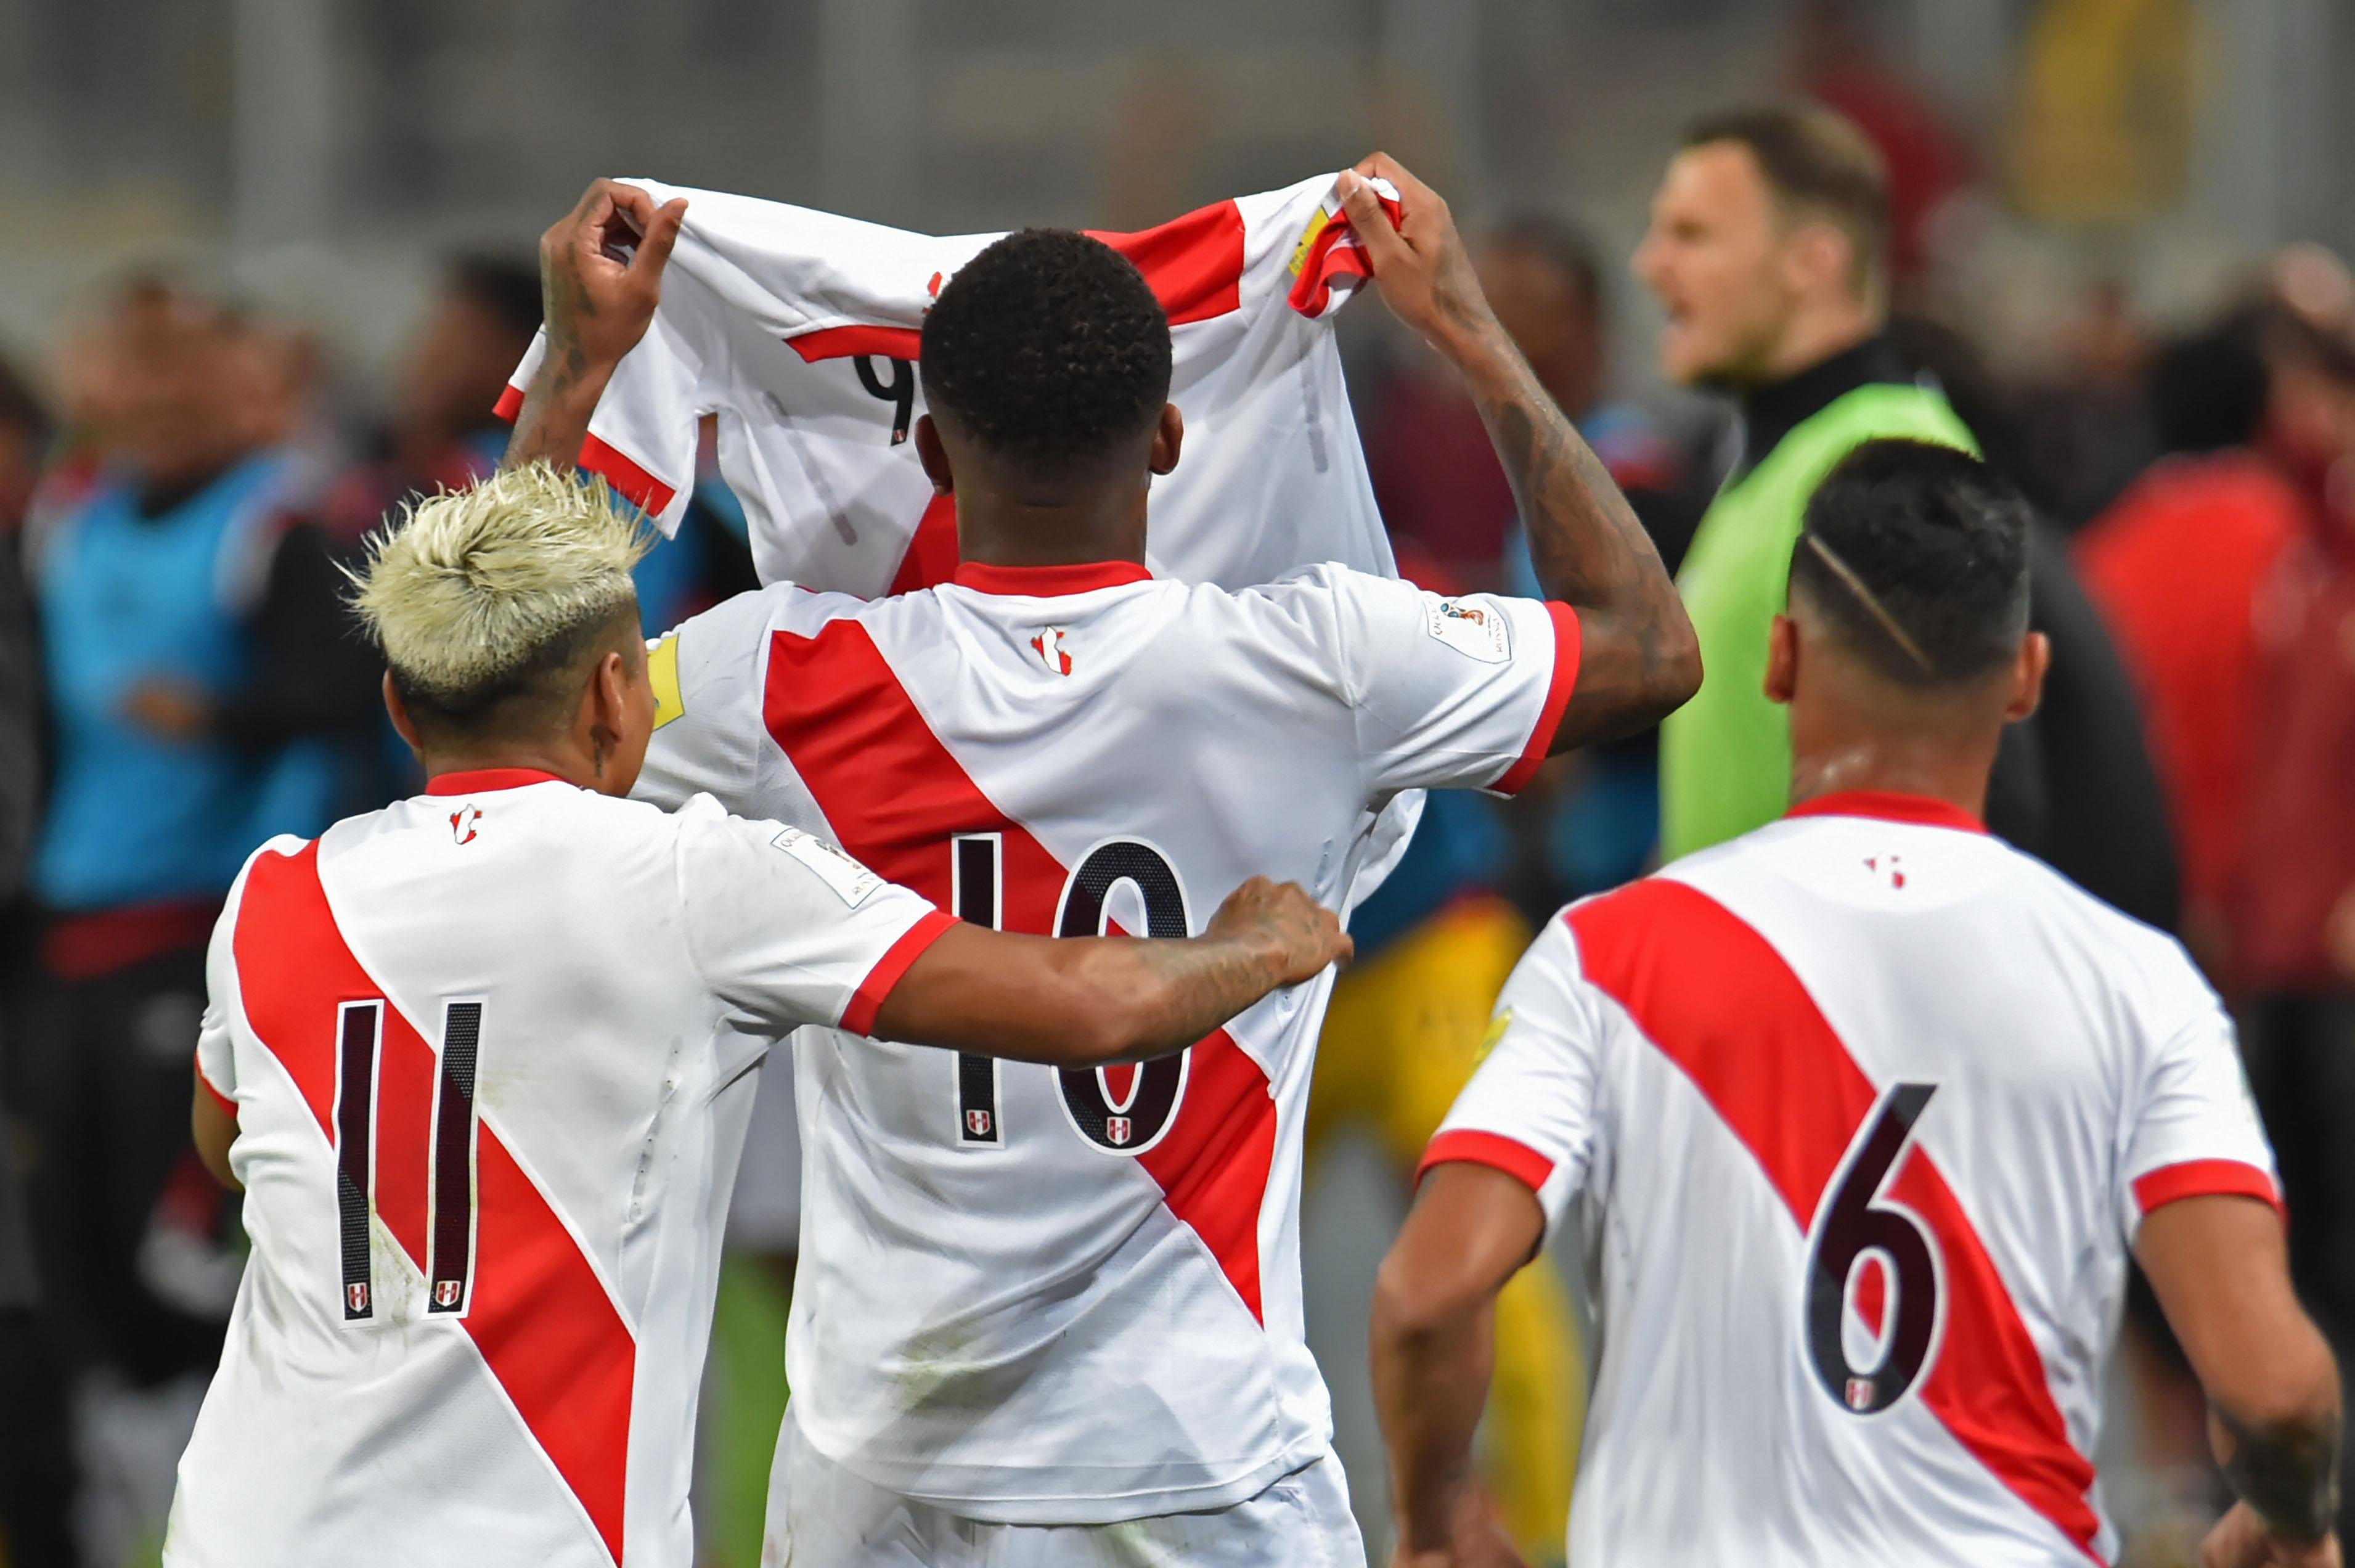 Peru were the better team on the night in all fairness